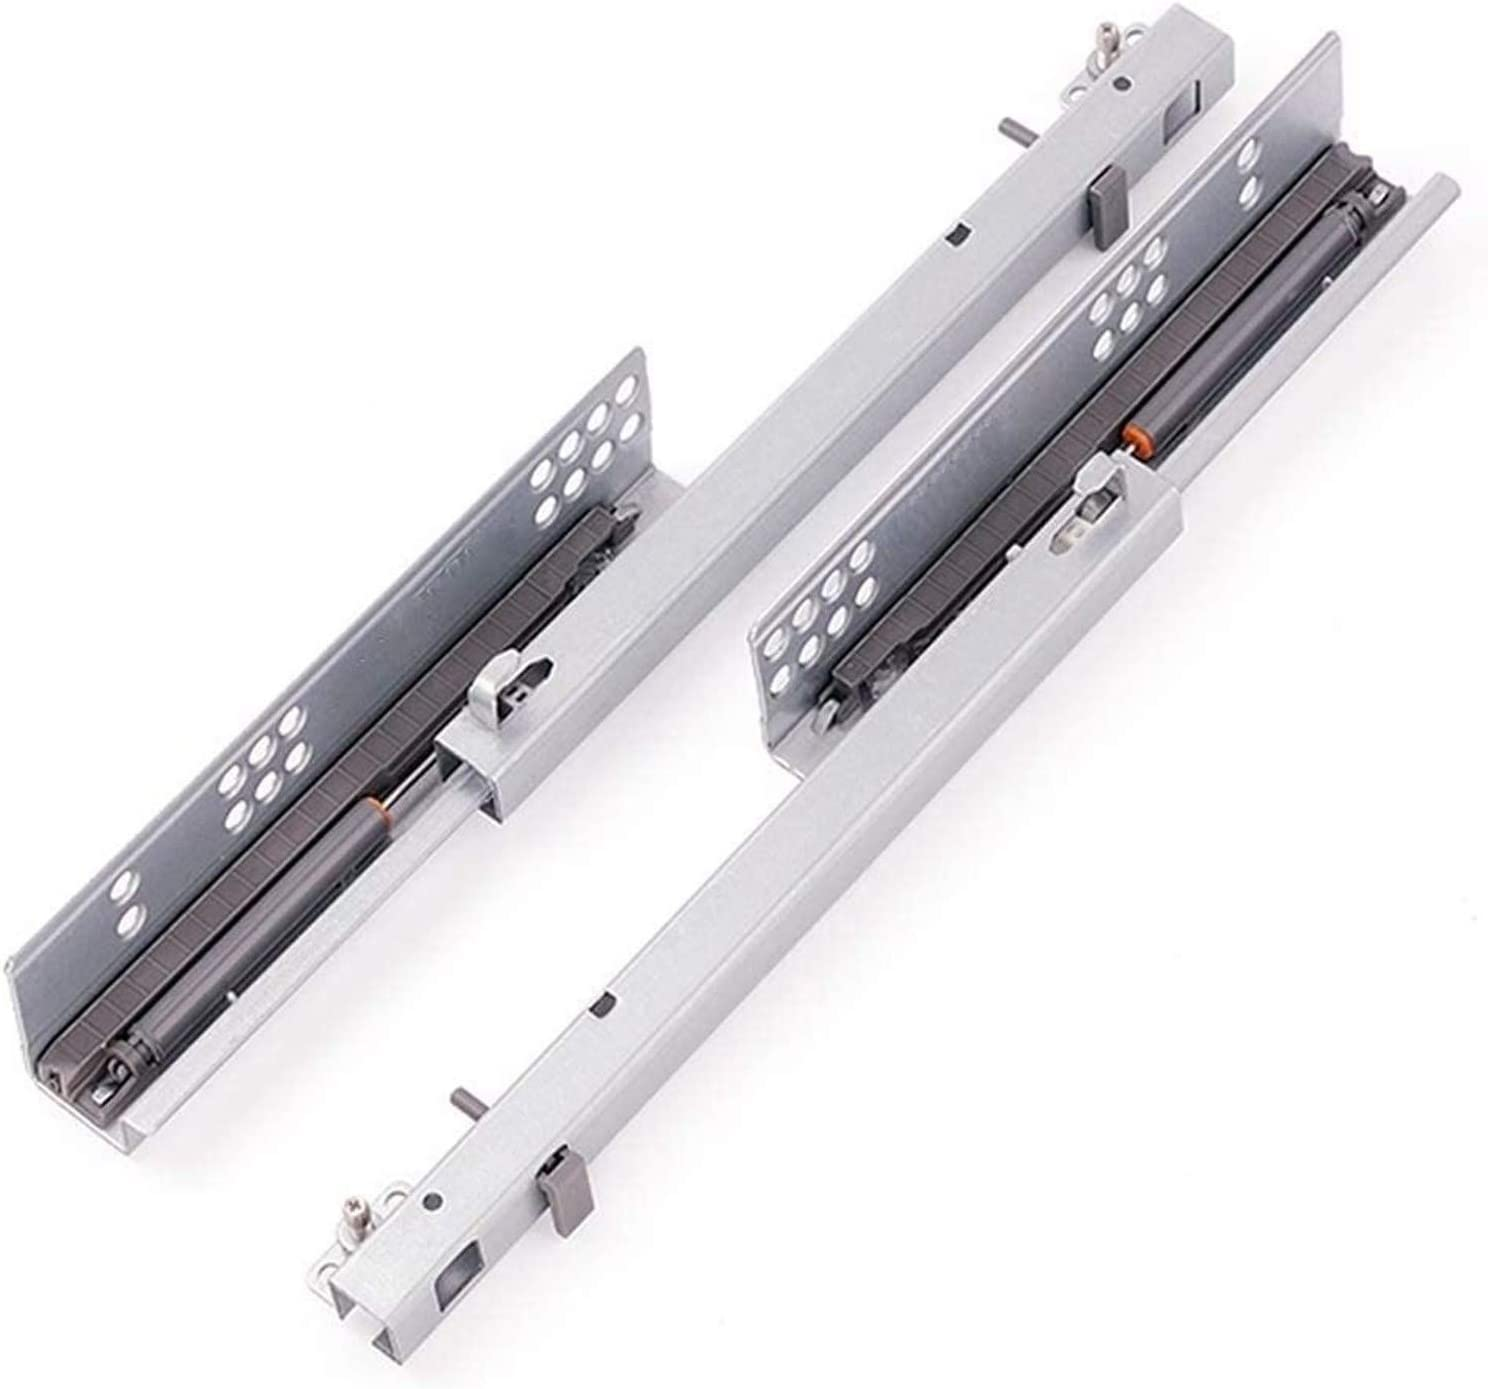 No Noise Three-Section Guide Rail Sliding Smooth Cold Rolled Steel Material Drawer Slides Drawer Runner Slides,Drawer Bottom Track Damping Buffer Size : 30cm Hidden One Pair Contains Two